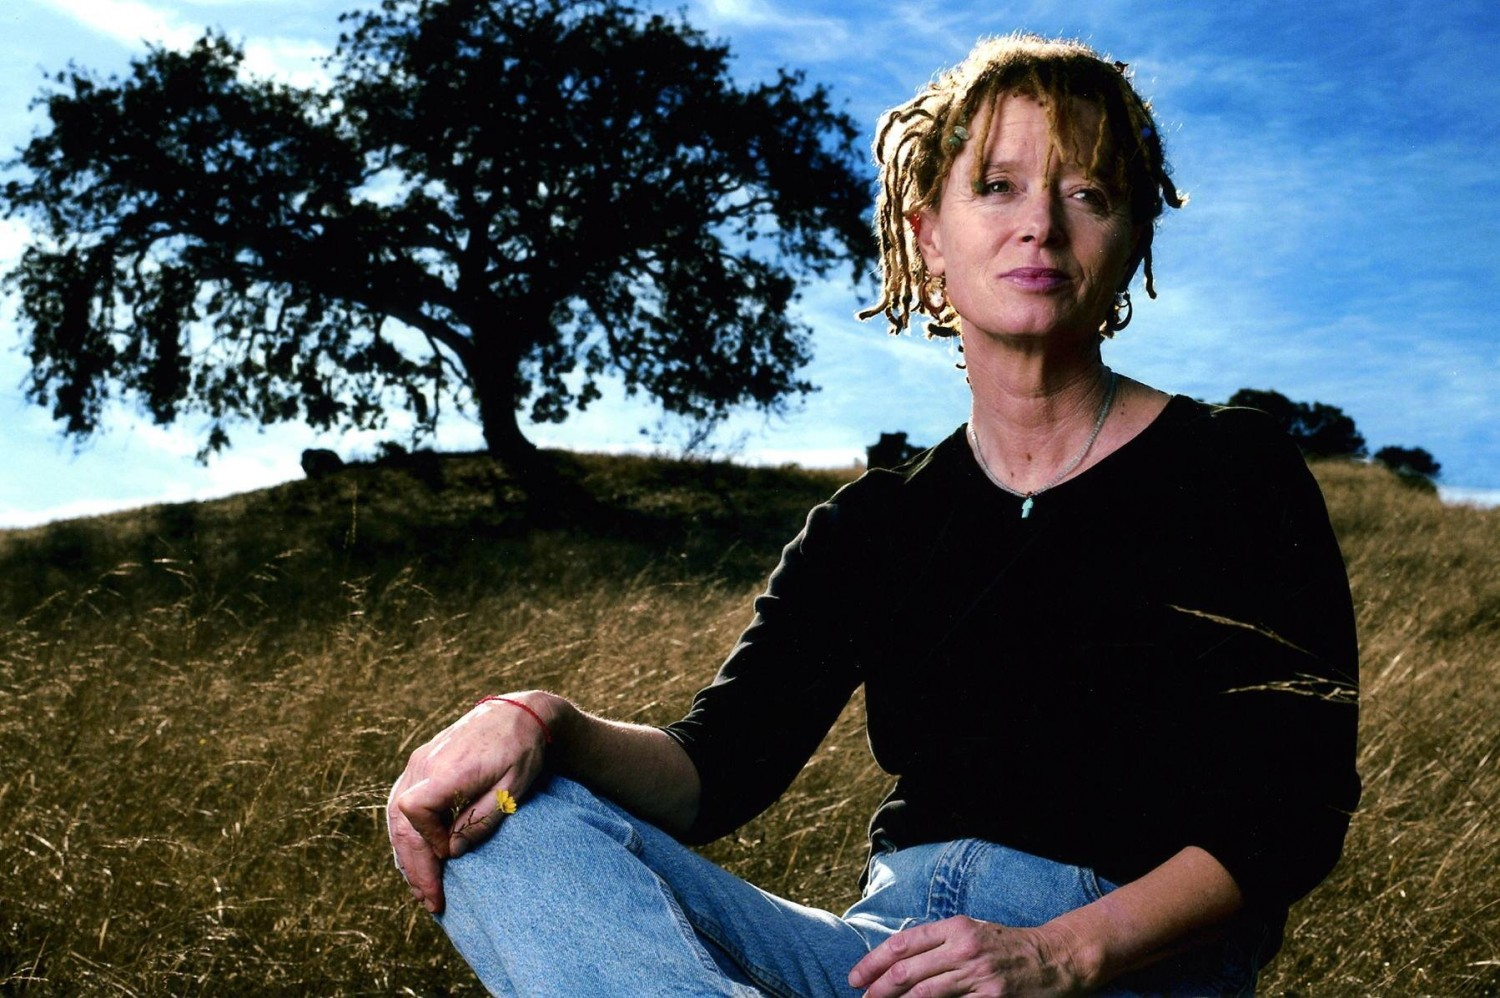 HOPE DOESN'T GIVE UP: ANNE LAMOTT